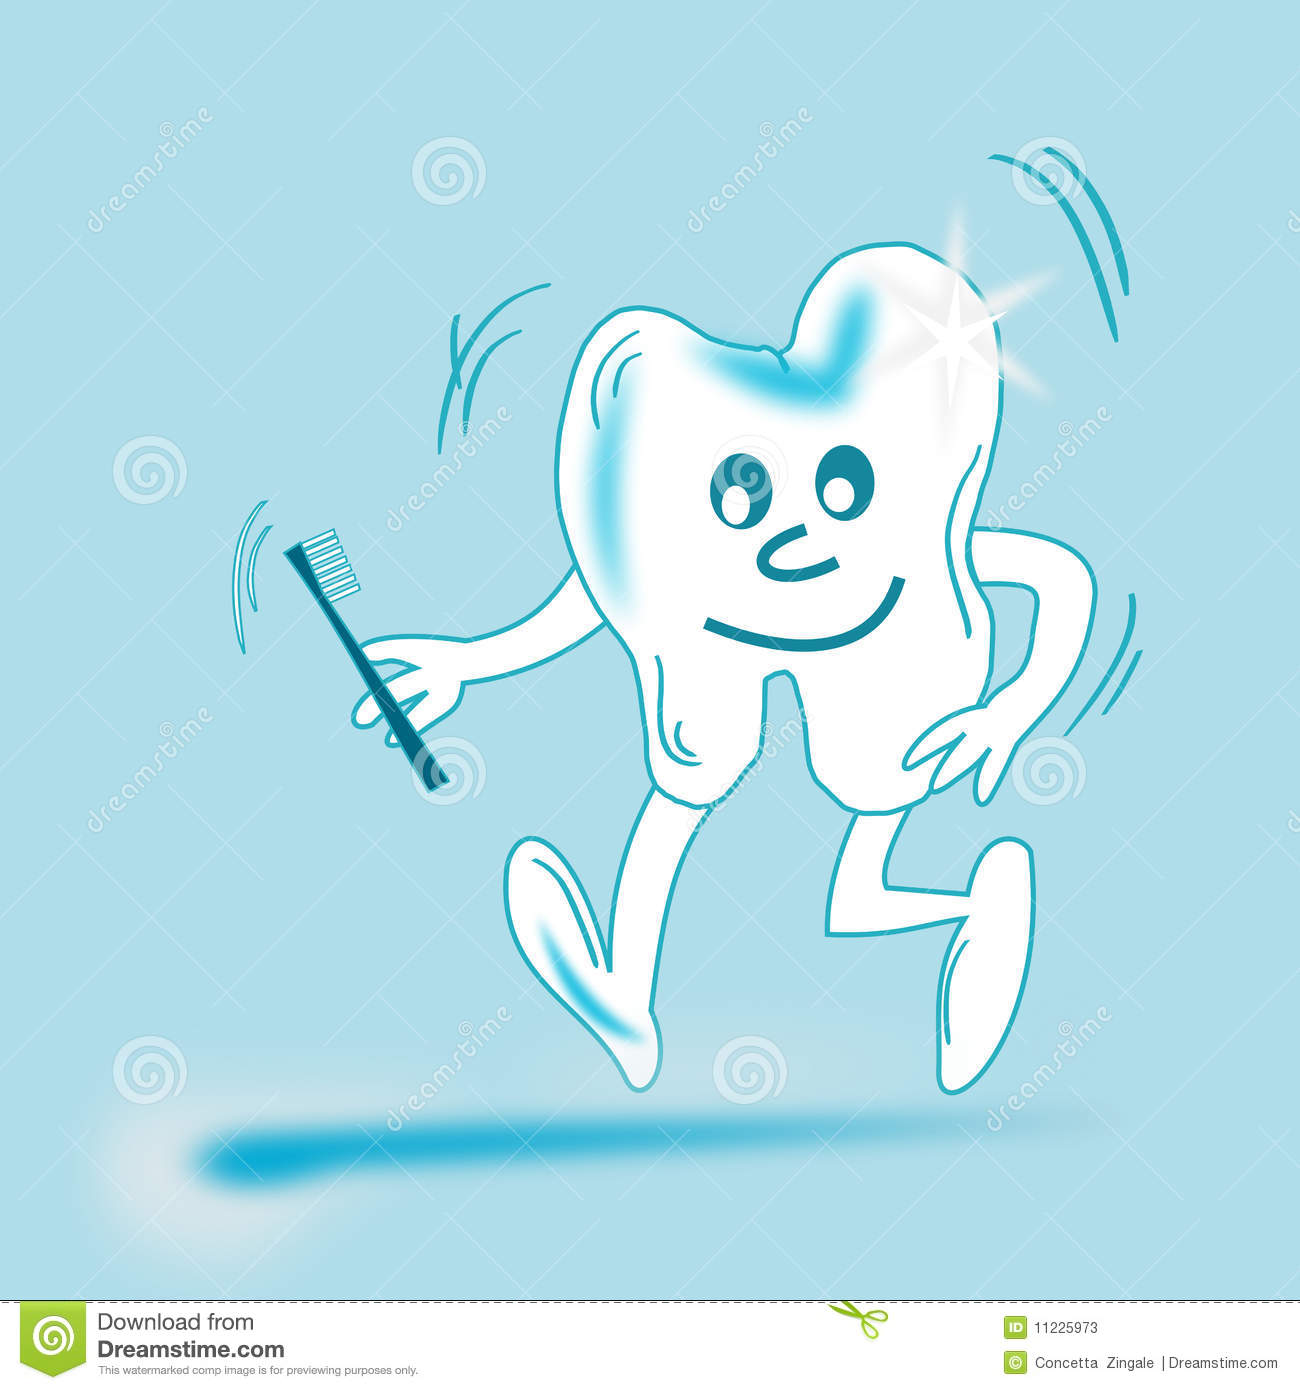 Image Gallery of Flossing Teeth Animation